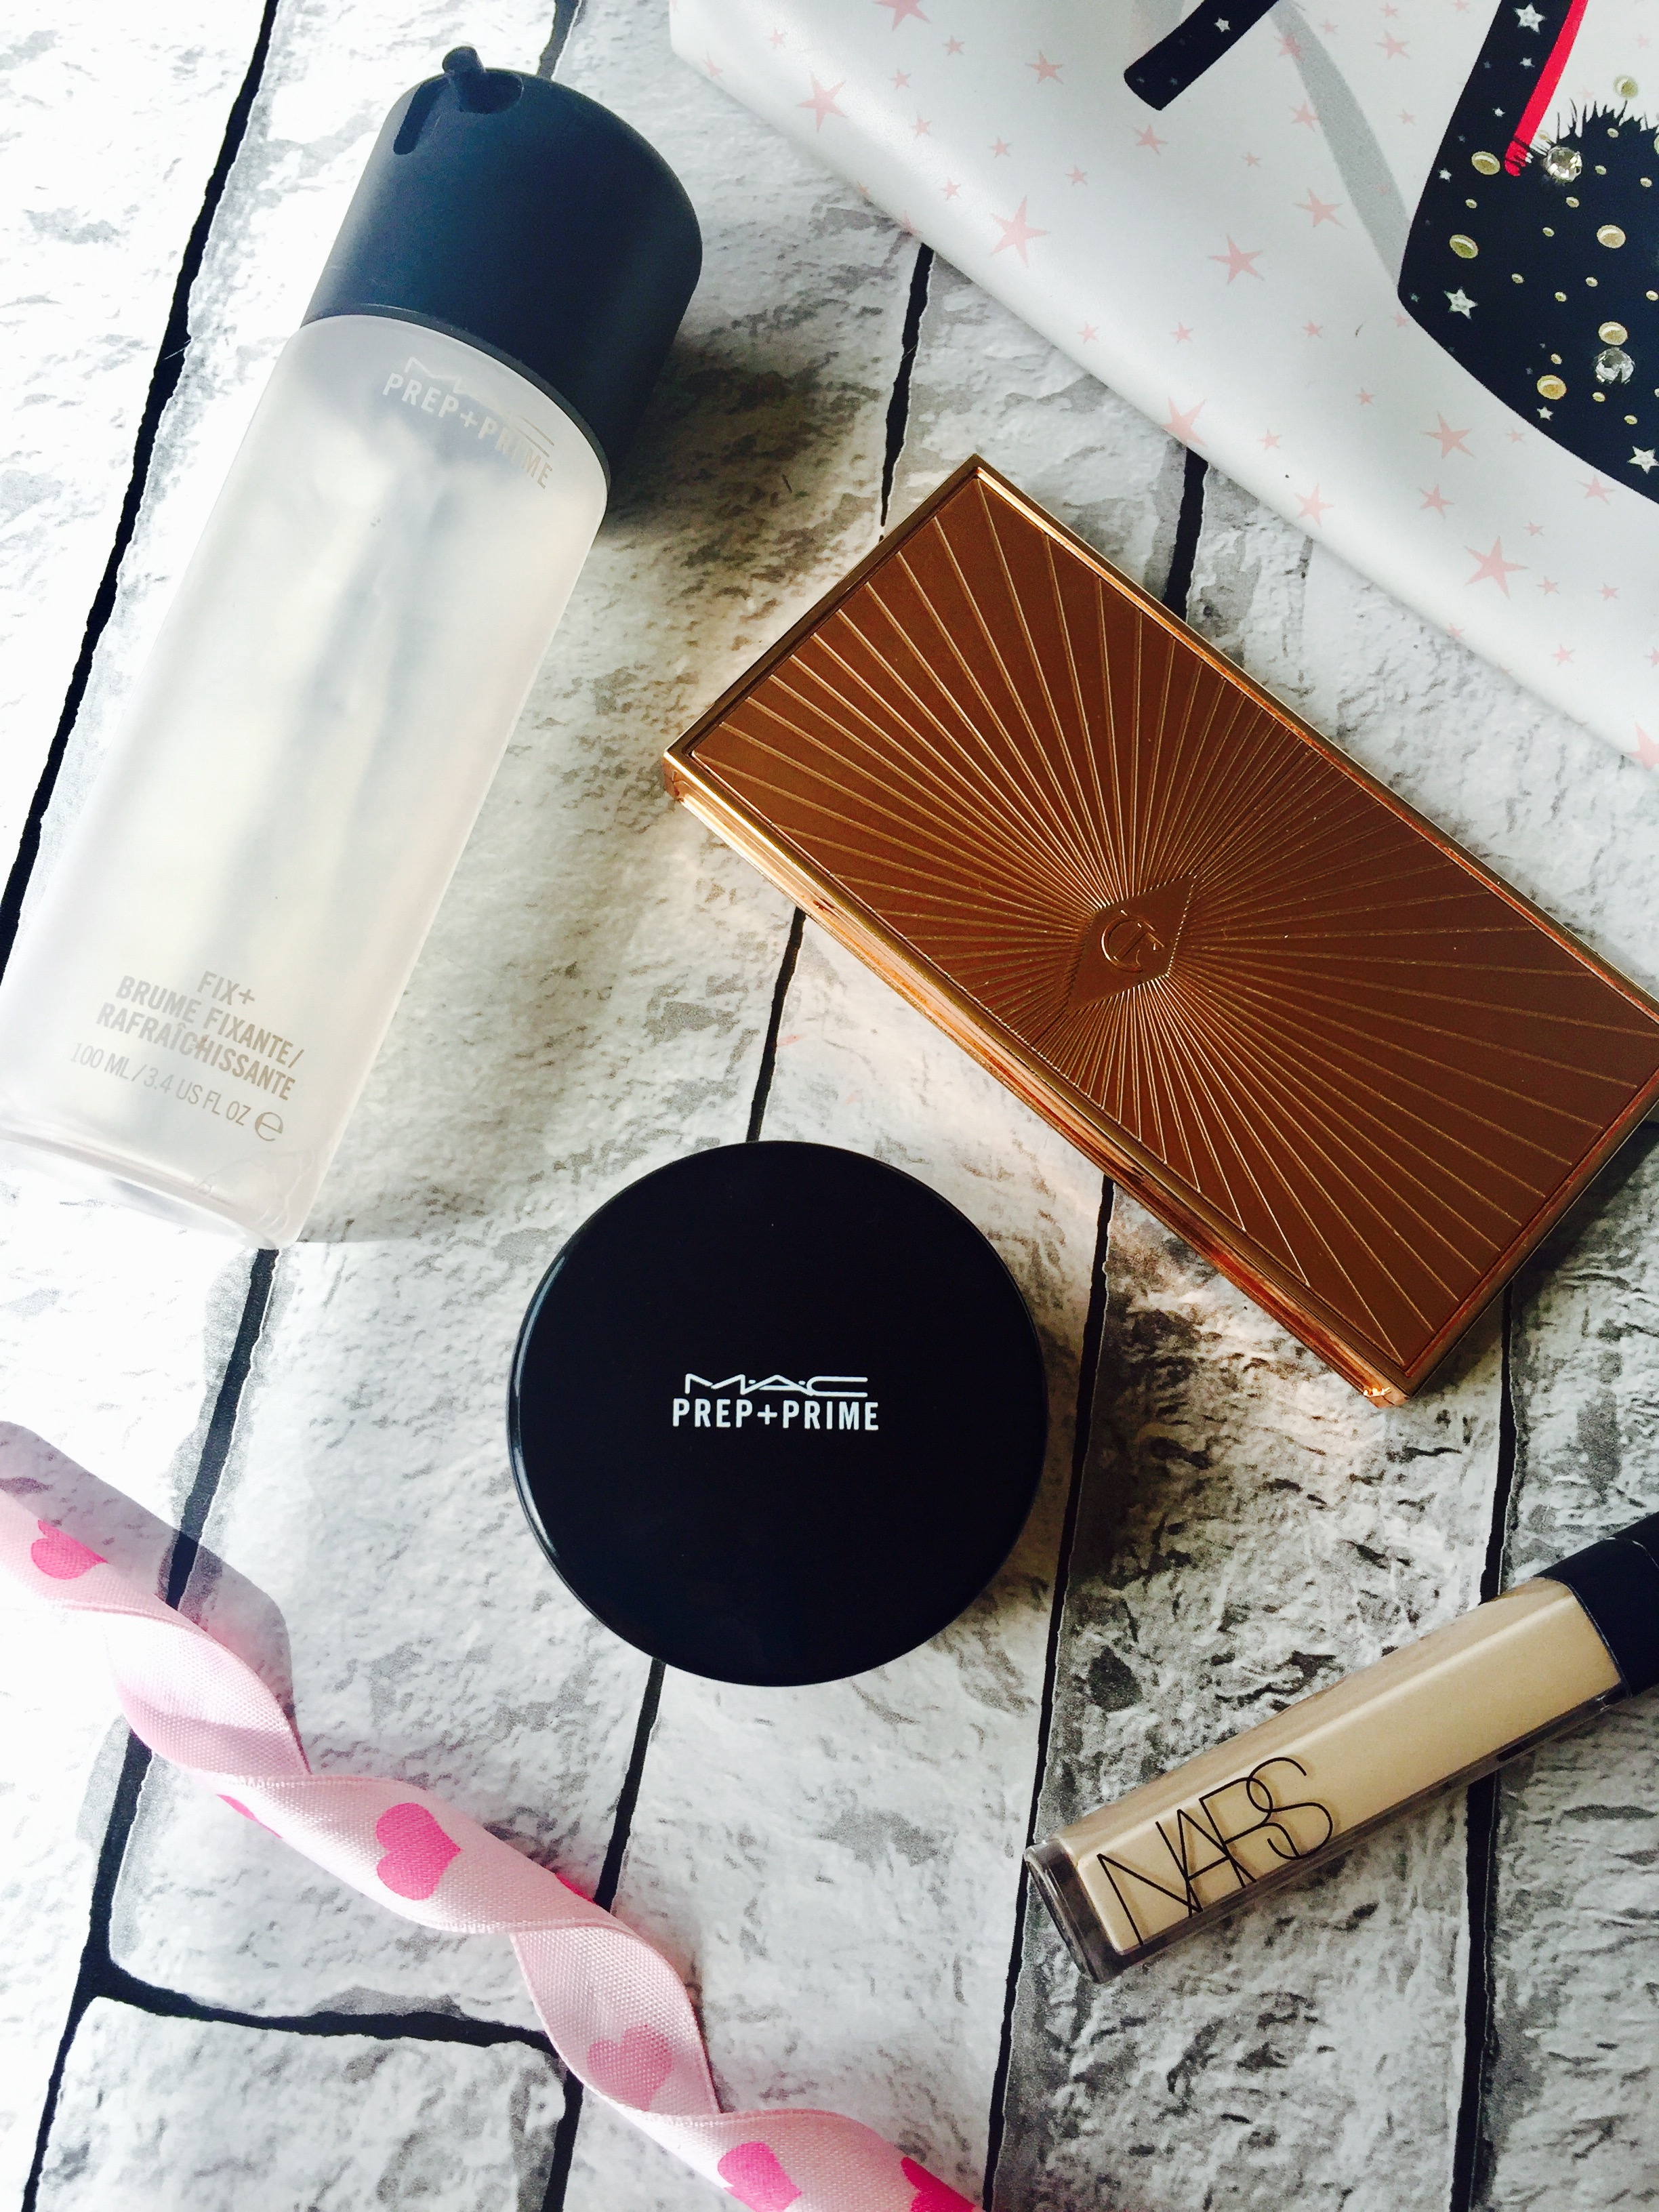 Everyday makeup bag must haves Mac Fix plus prep and prime